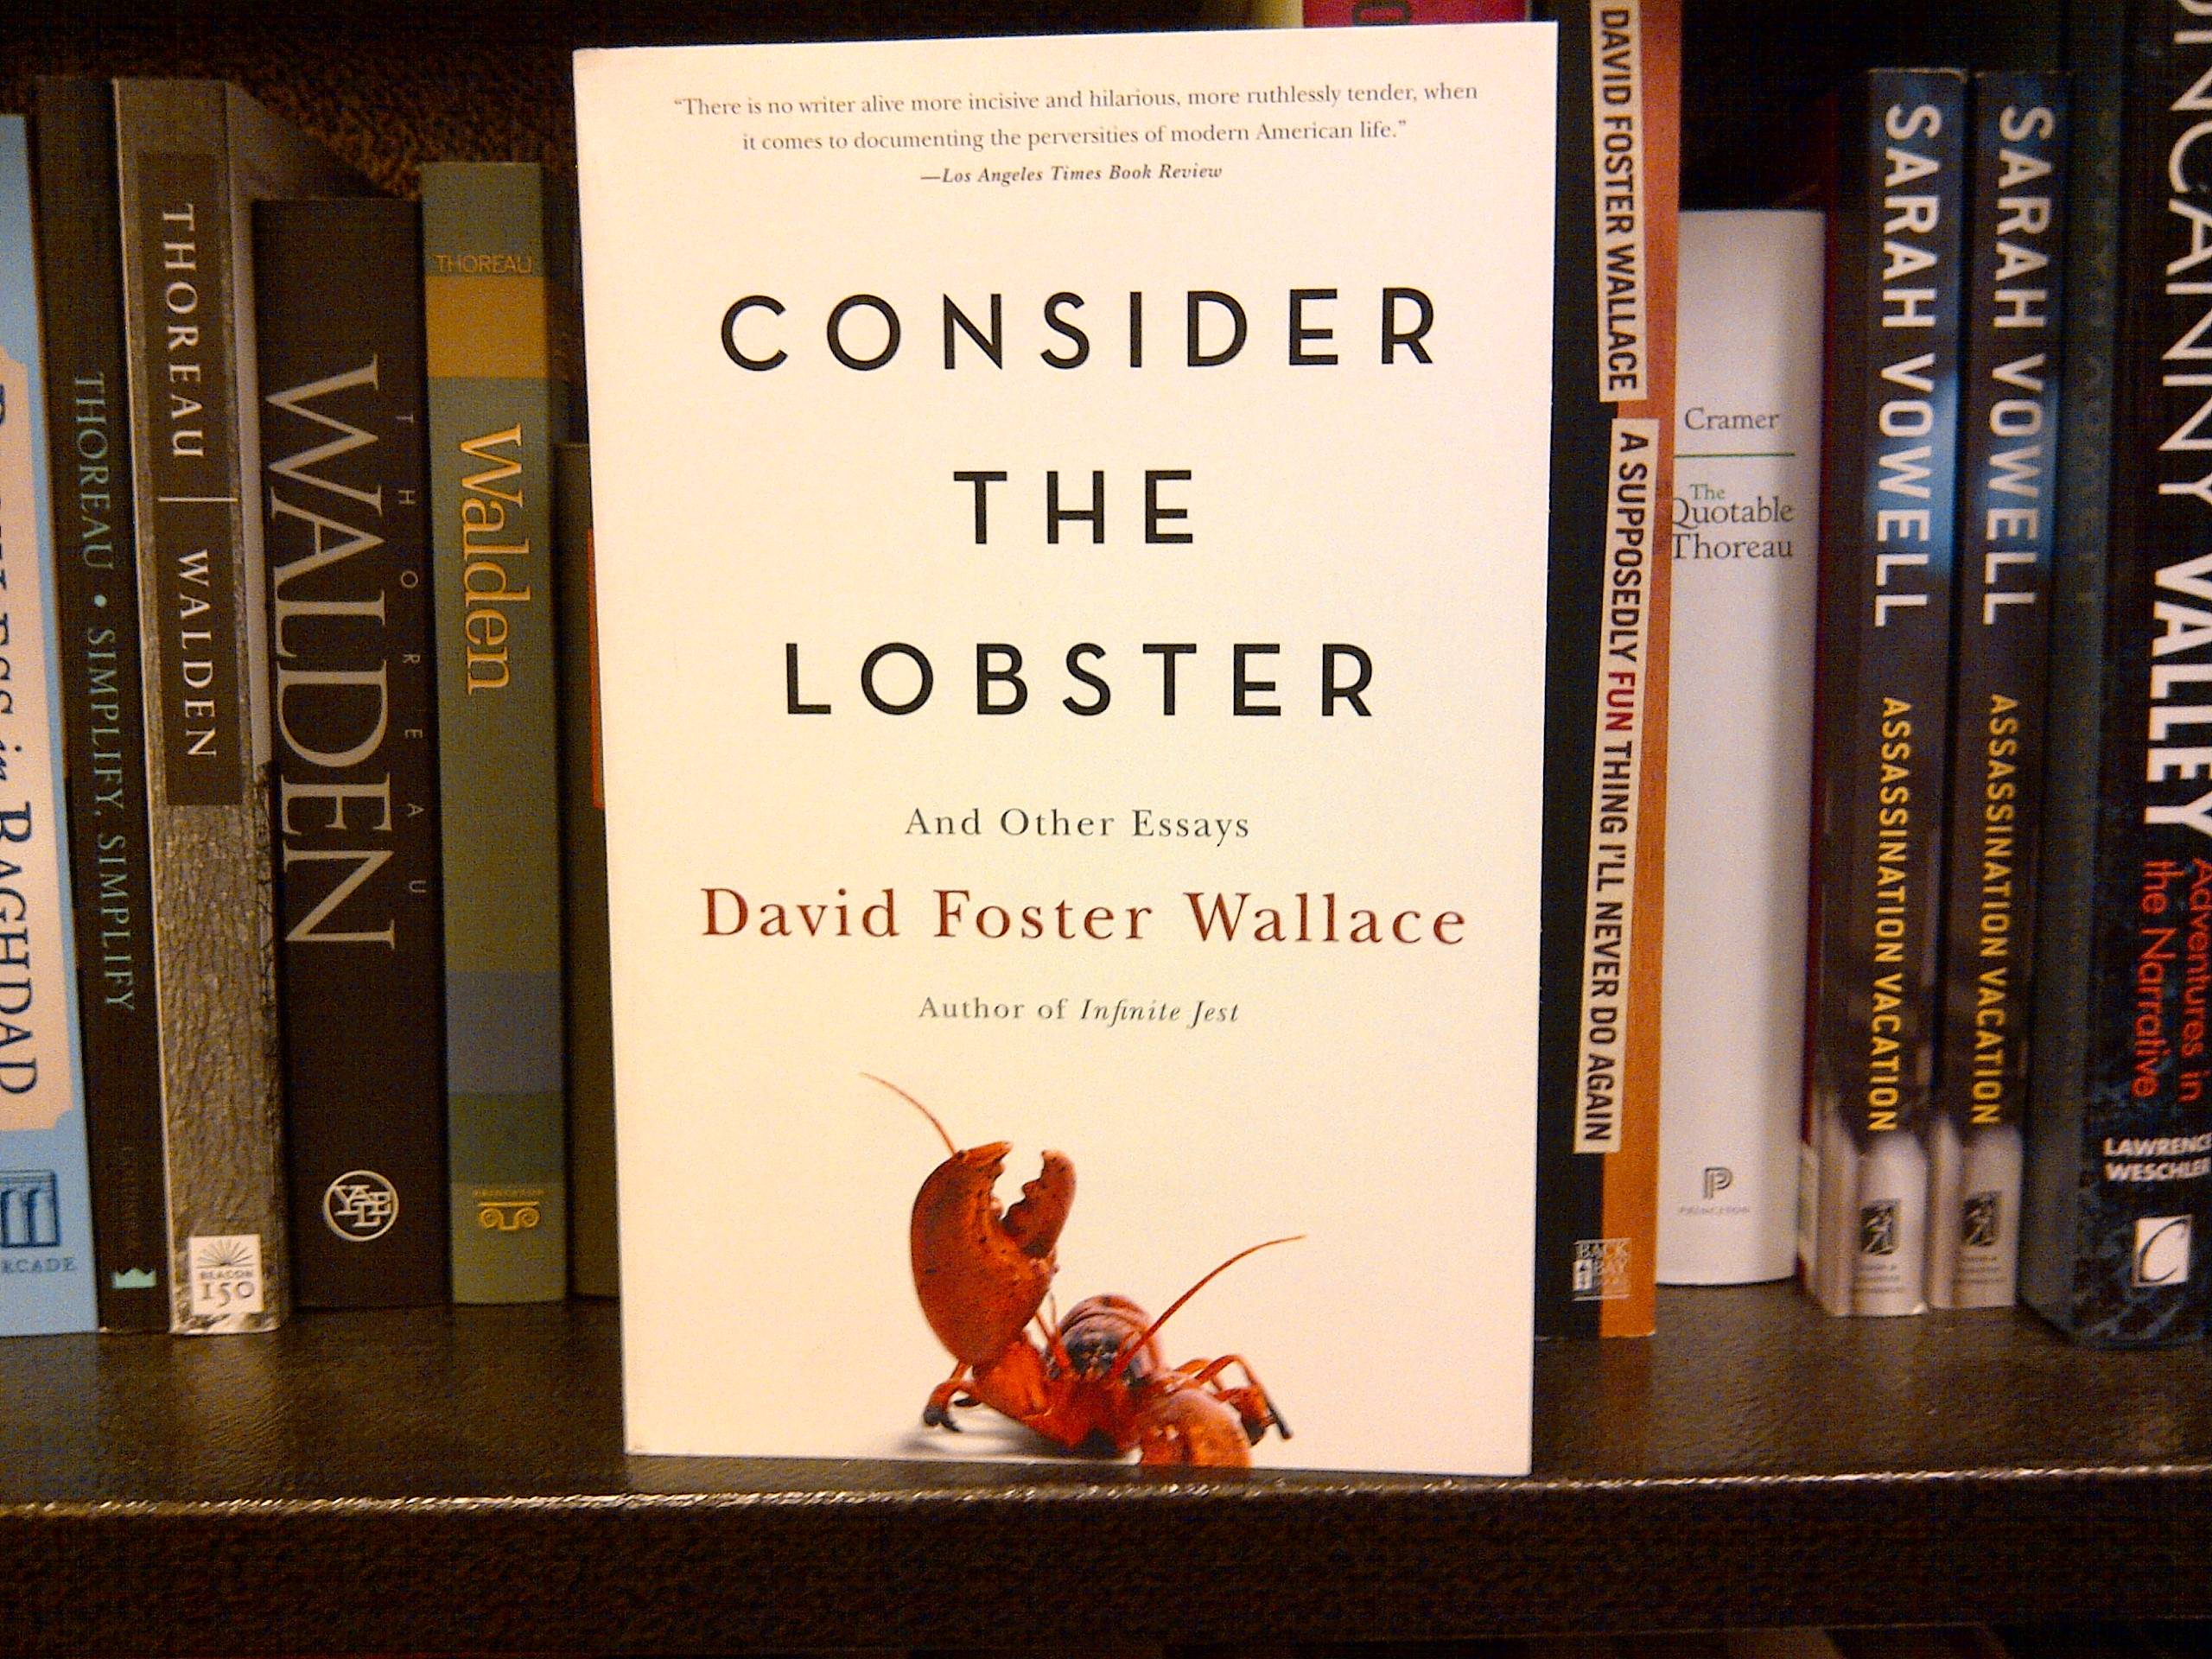 [PDF]Consider the Lobster and Other Essays by David Foster Wallace Book Free Download (343 pages)